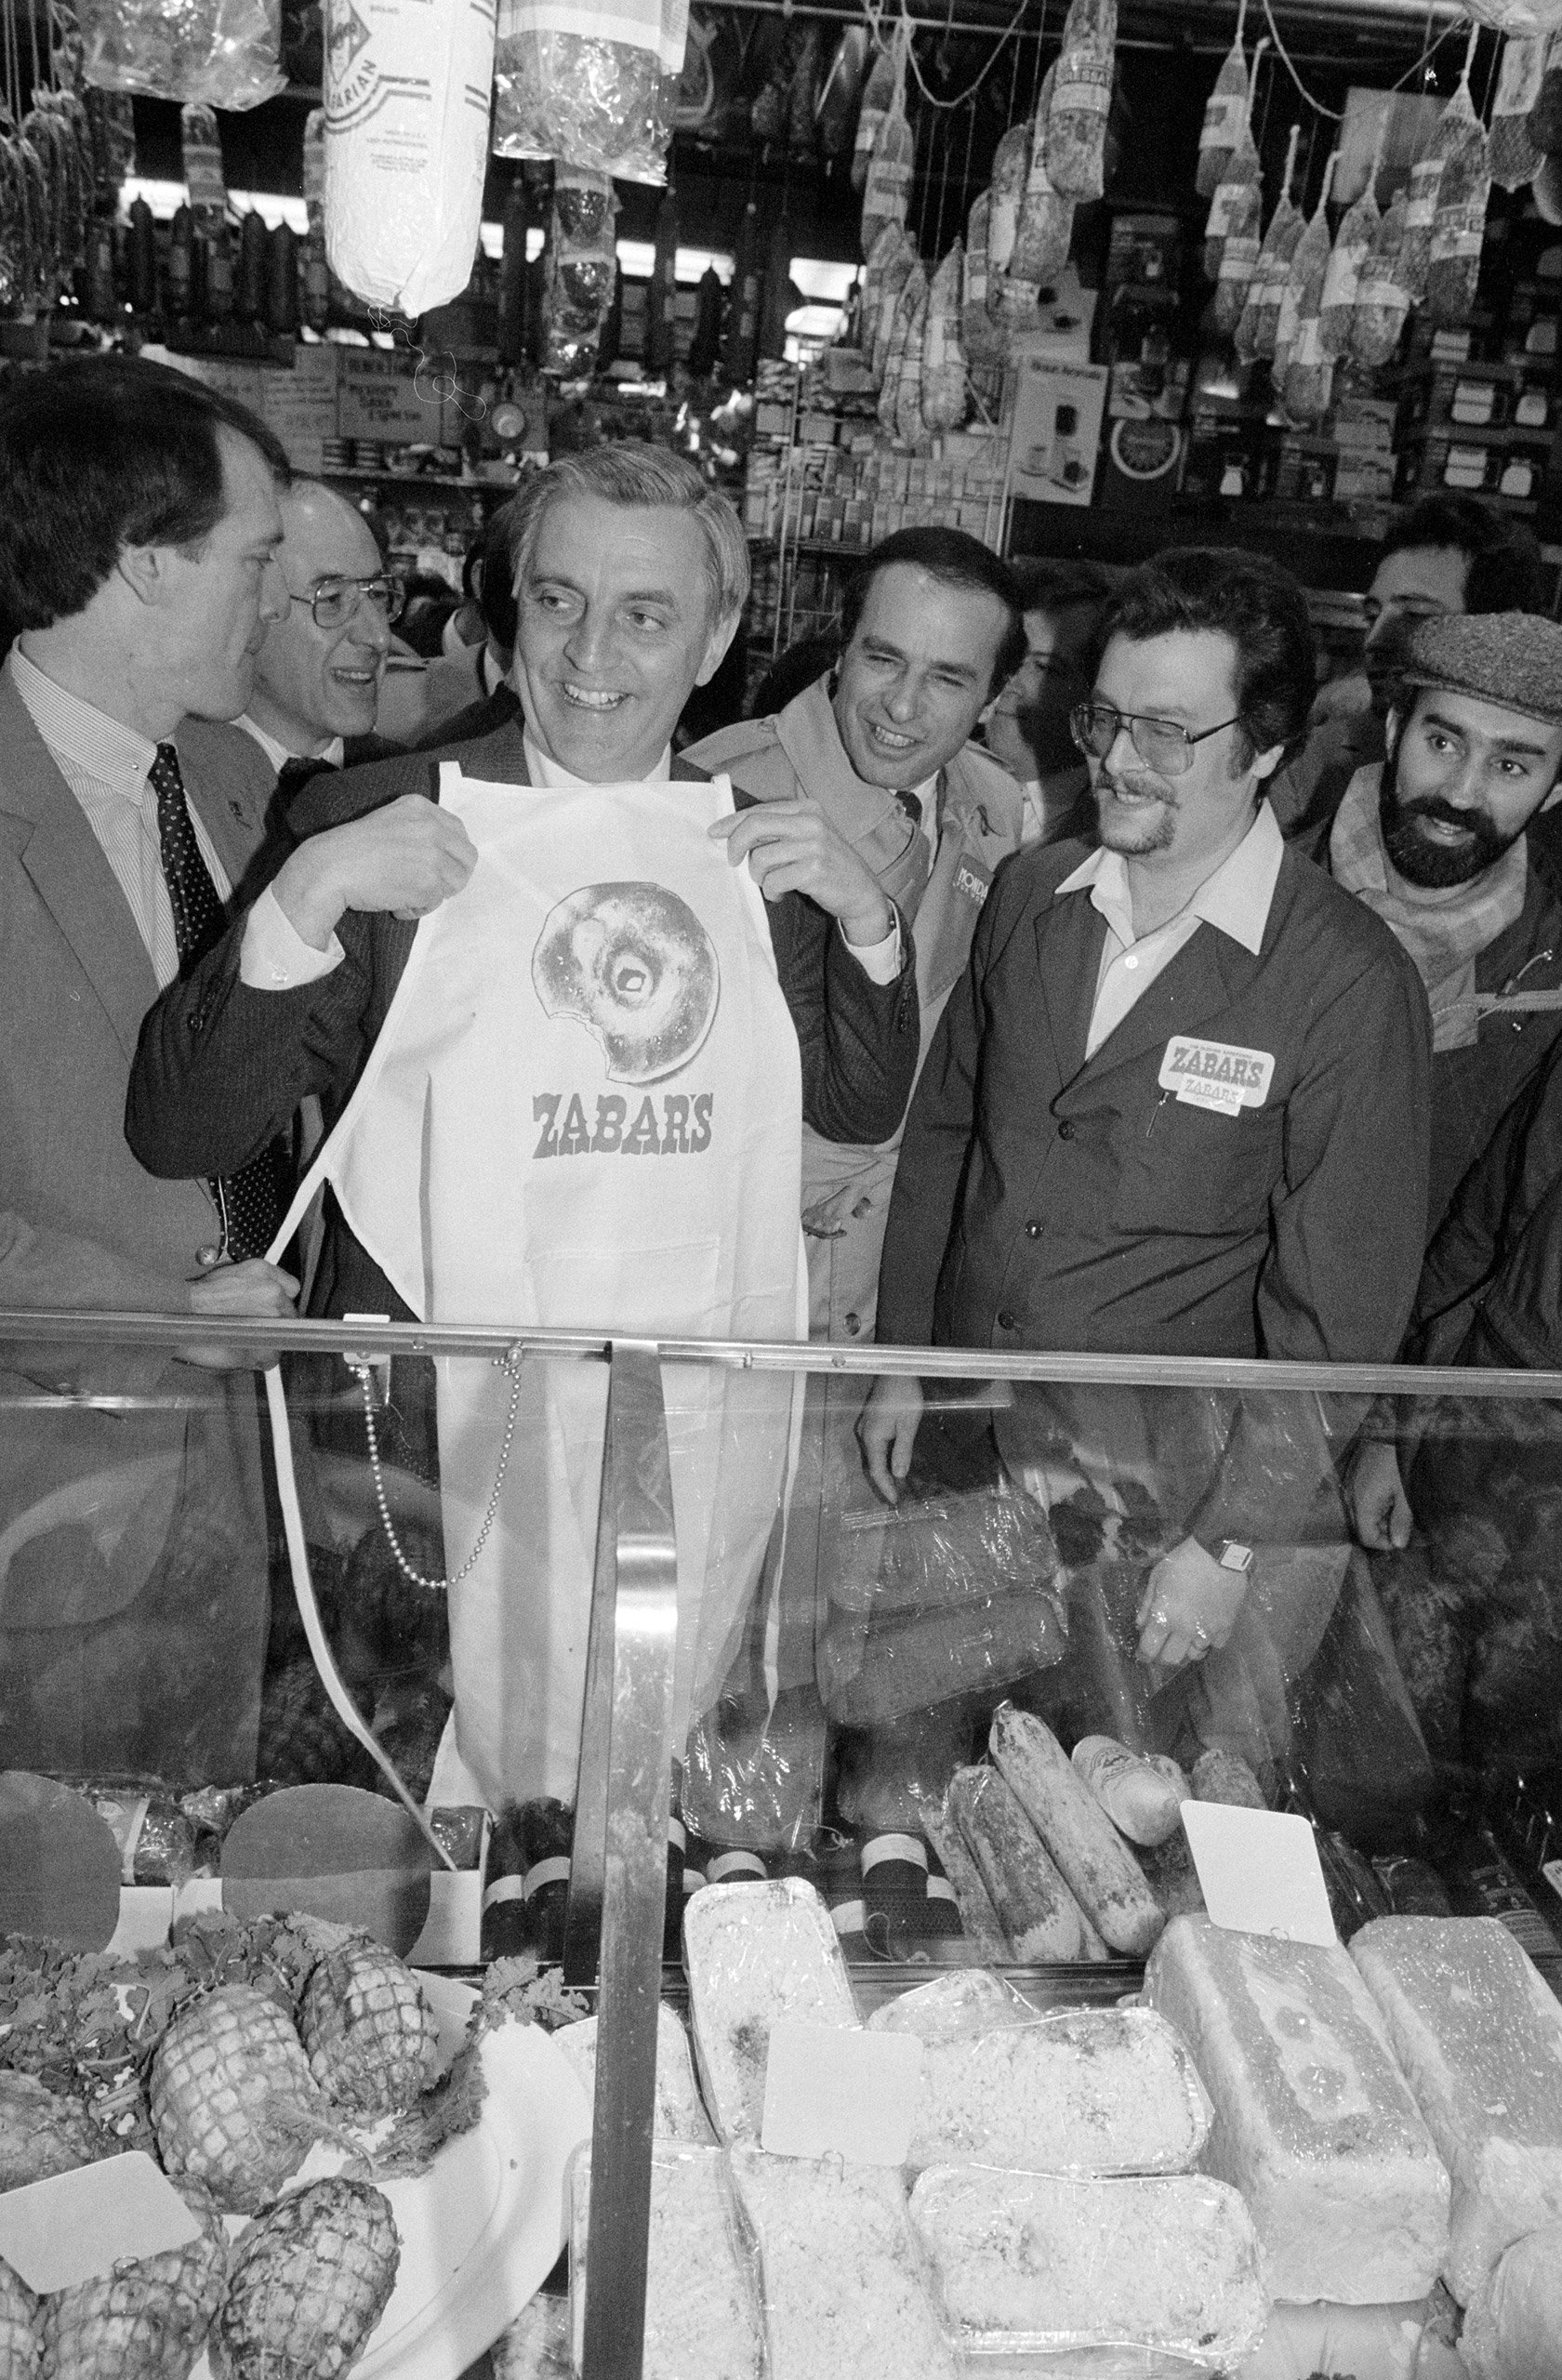 Former Vice President Walter Mondale holds an apron bearing an image of a bagel-presented to him during a visit to Zabar's Deli, campaigning for the Democratic presidential nomination. March 25, 1984.